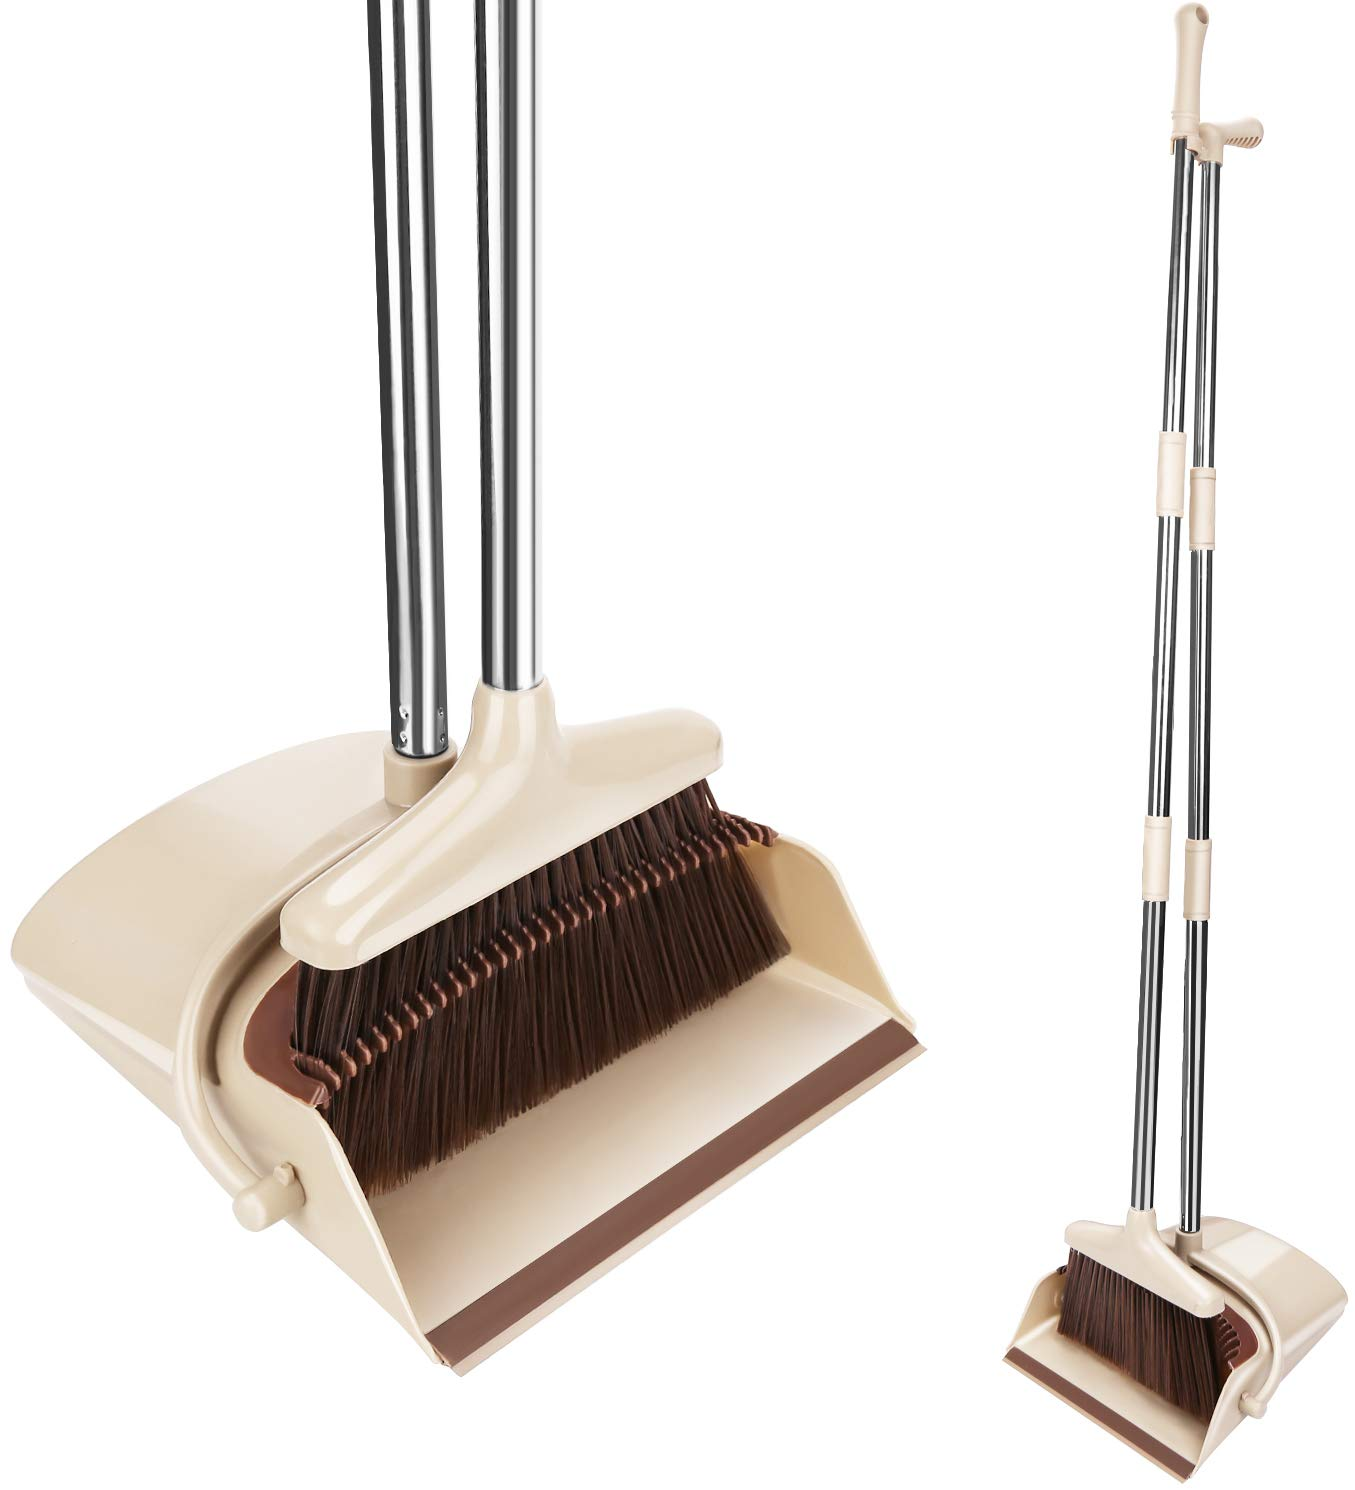 Lunies Broom and Dustpan Combo Set with 51' Long Handle & Teeth for Upright Sweep Kitchen Home Lobby Office House Clean Beige